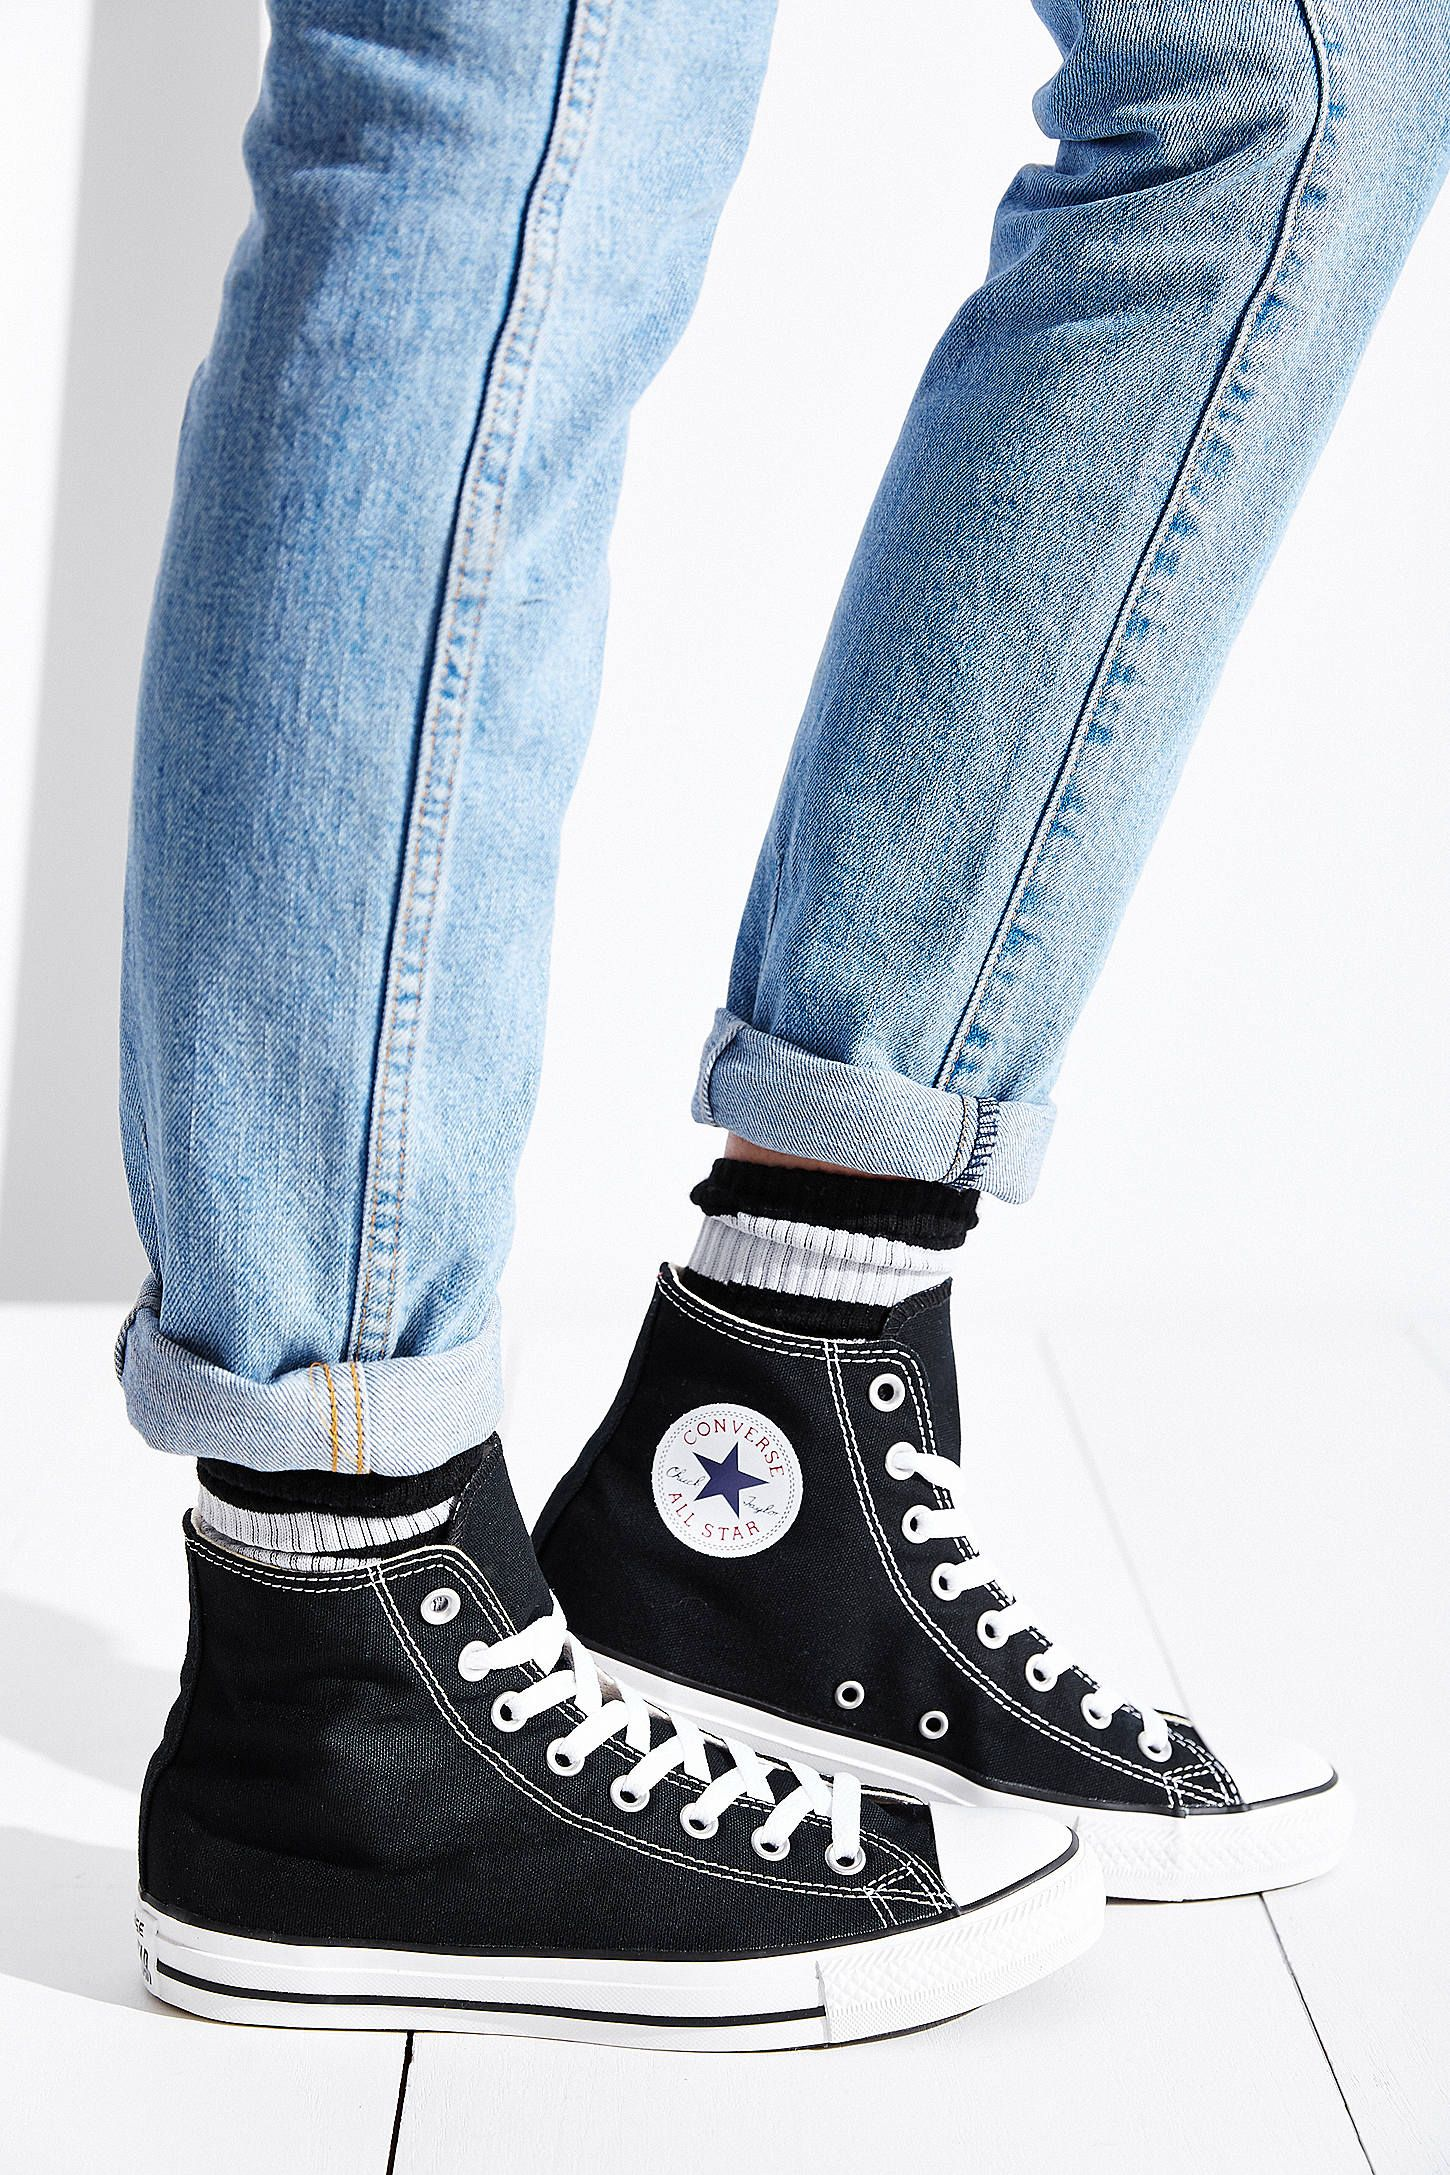 9ff4c71b45ad Slide View  1  Converse Chuck Taylor All Star High Top Sneaker